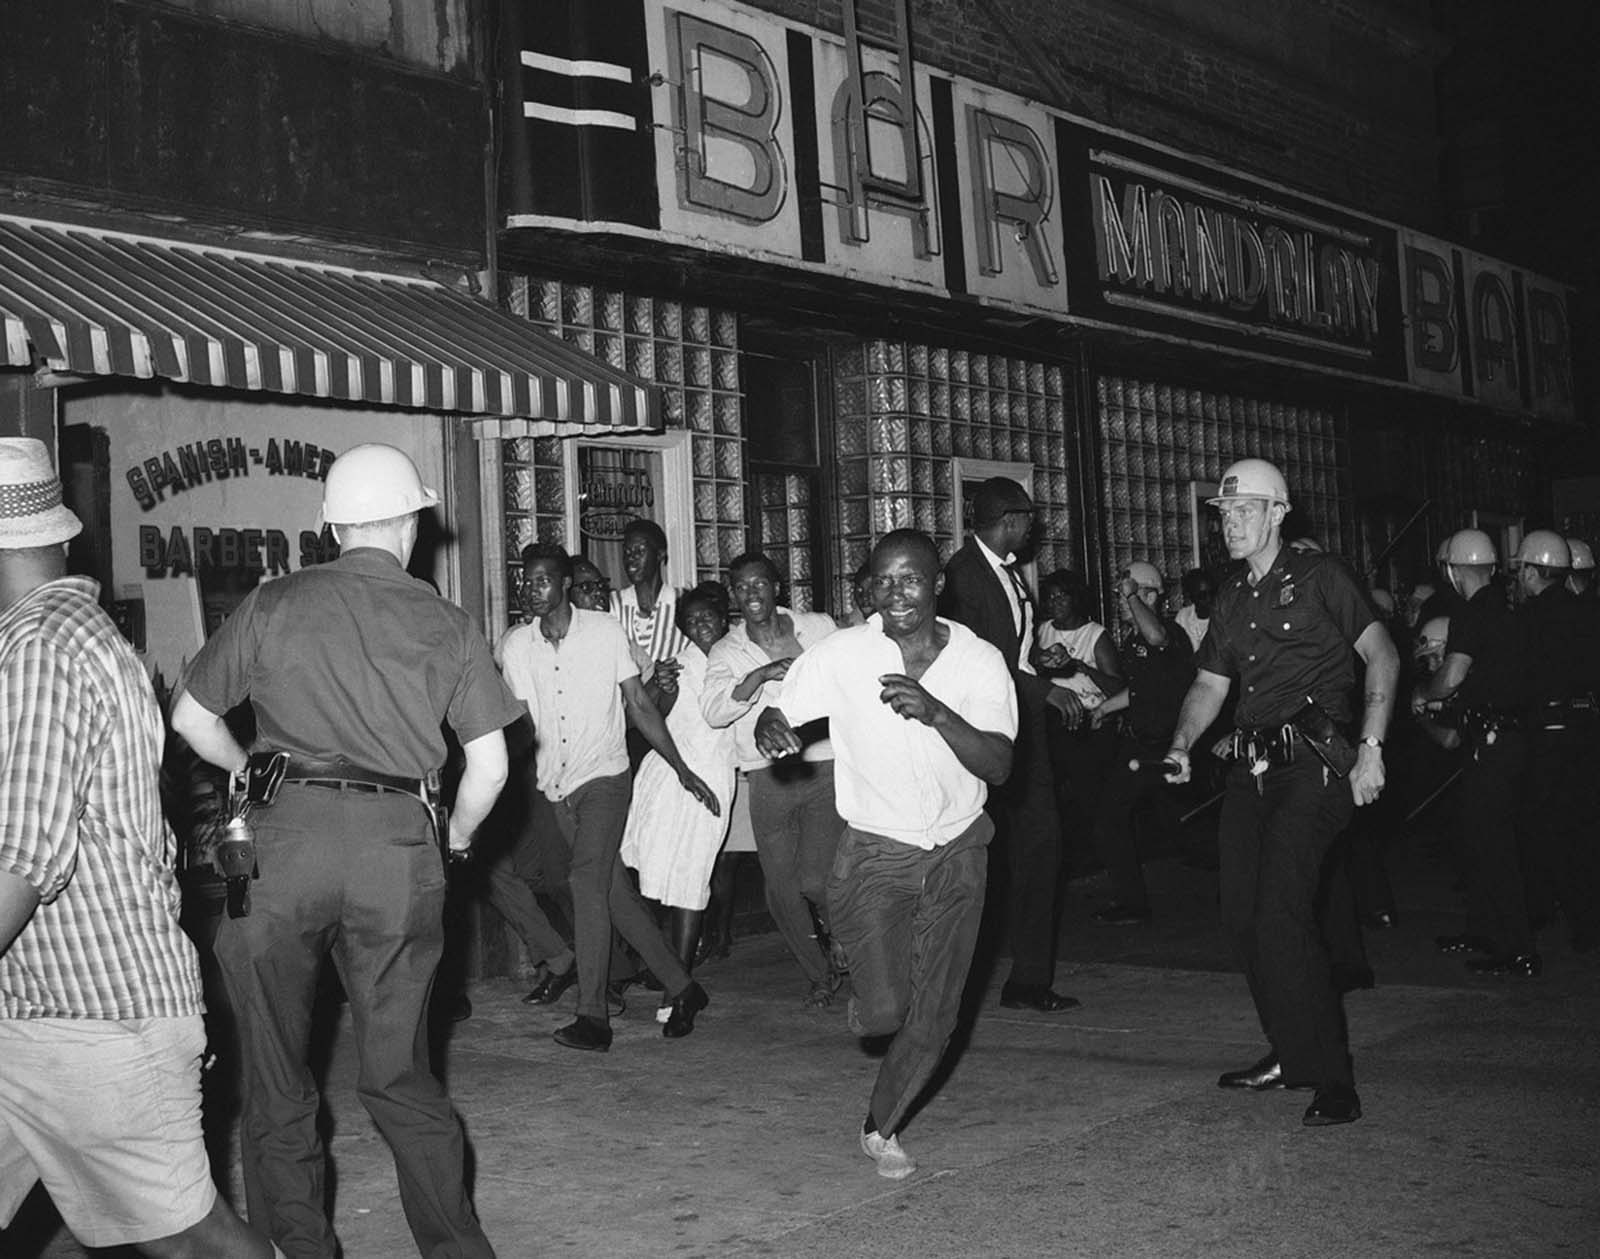 Members of New York's Harlem community run from steel-helmeted police swinging night sticks in effort to break up street gathering on July 19, 1964. The mood of the crowd was ugly following demonstrations during the night from July 18 to 19 and funeral services on July 19 for James Powell.